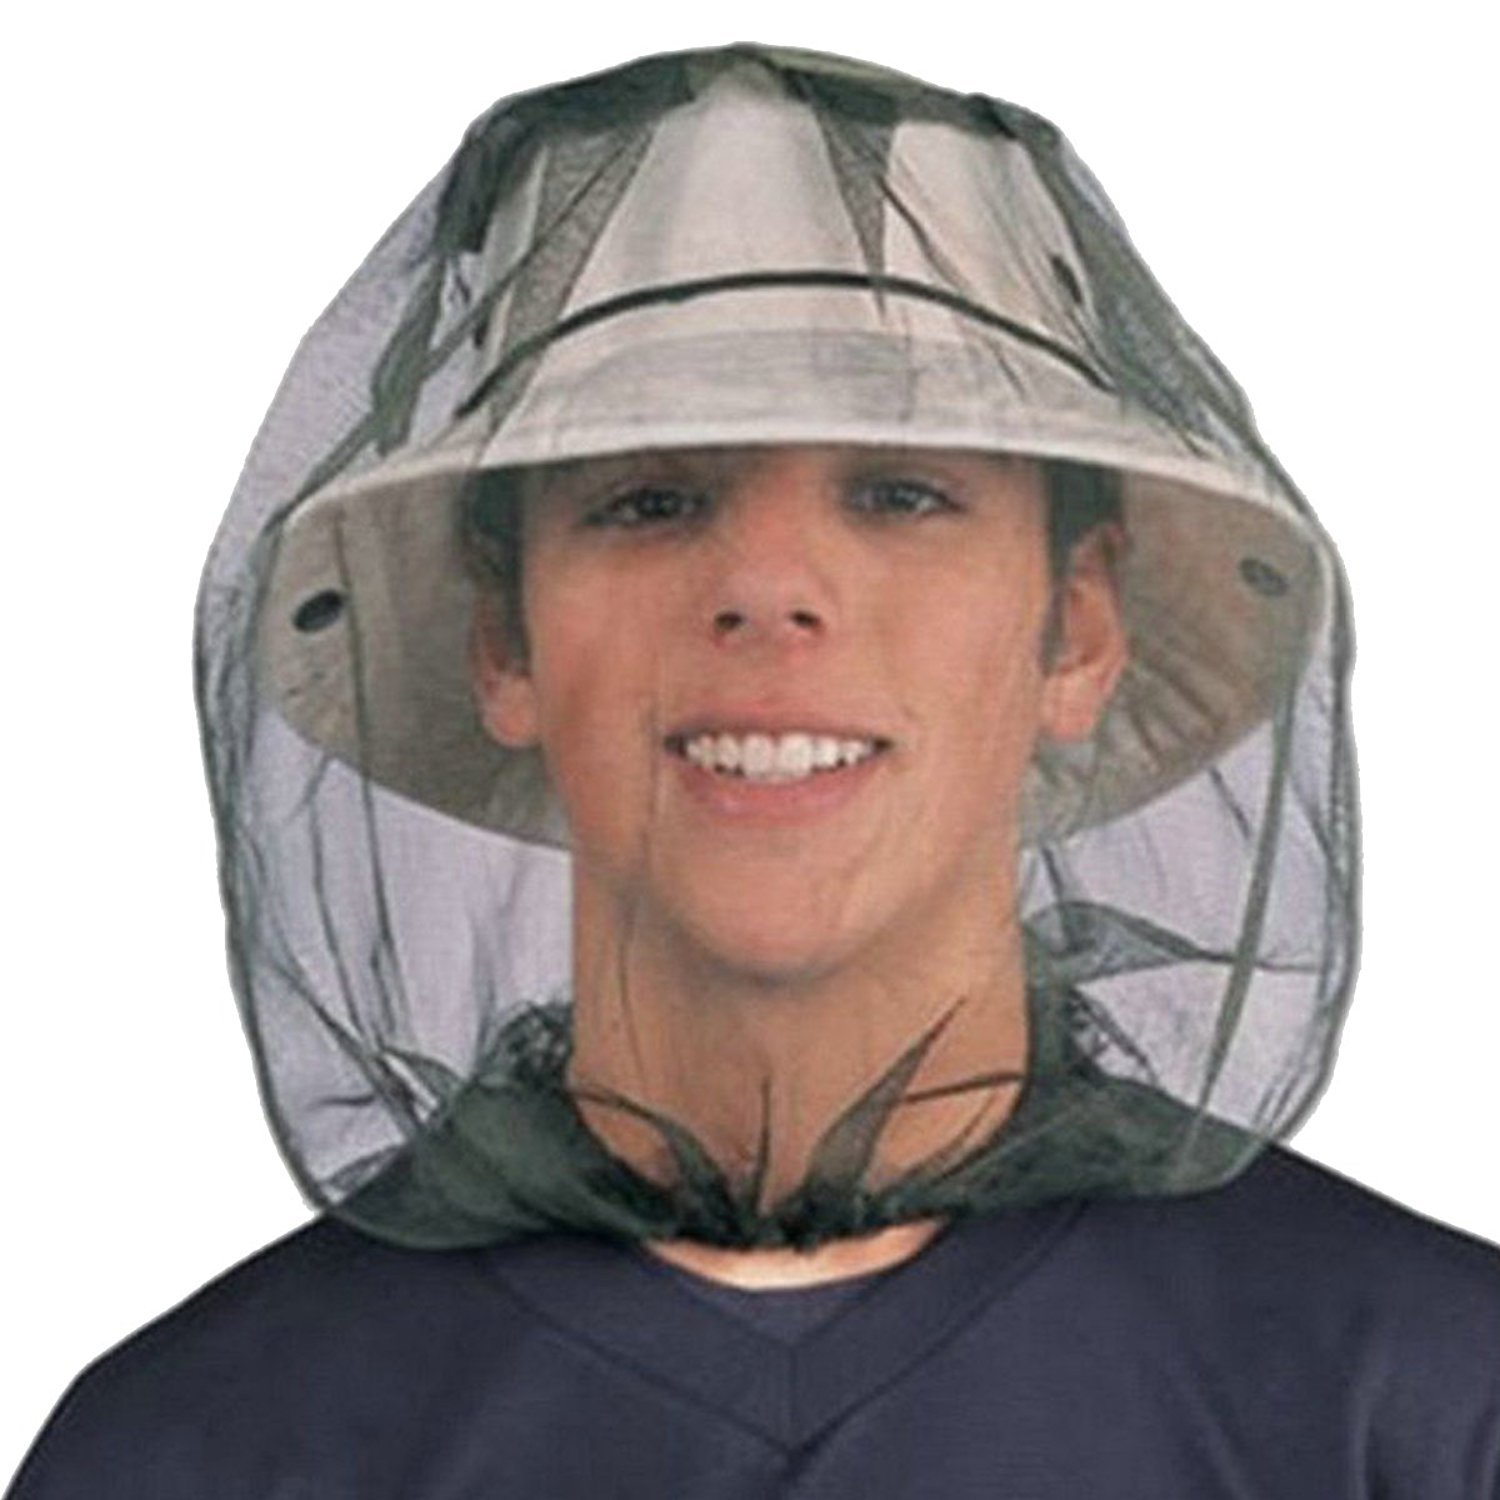 427f12ea3a3ca Mosquito Midge Insect Head Net Hat Mesh Face Protector Travel Camping  Fishing UK  Amazon.co.uk  Beauty